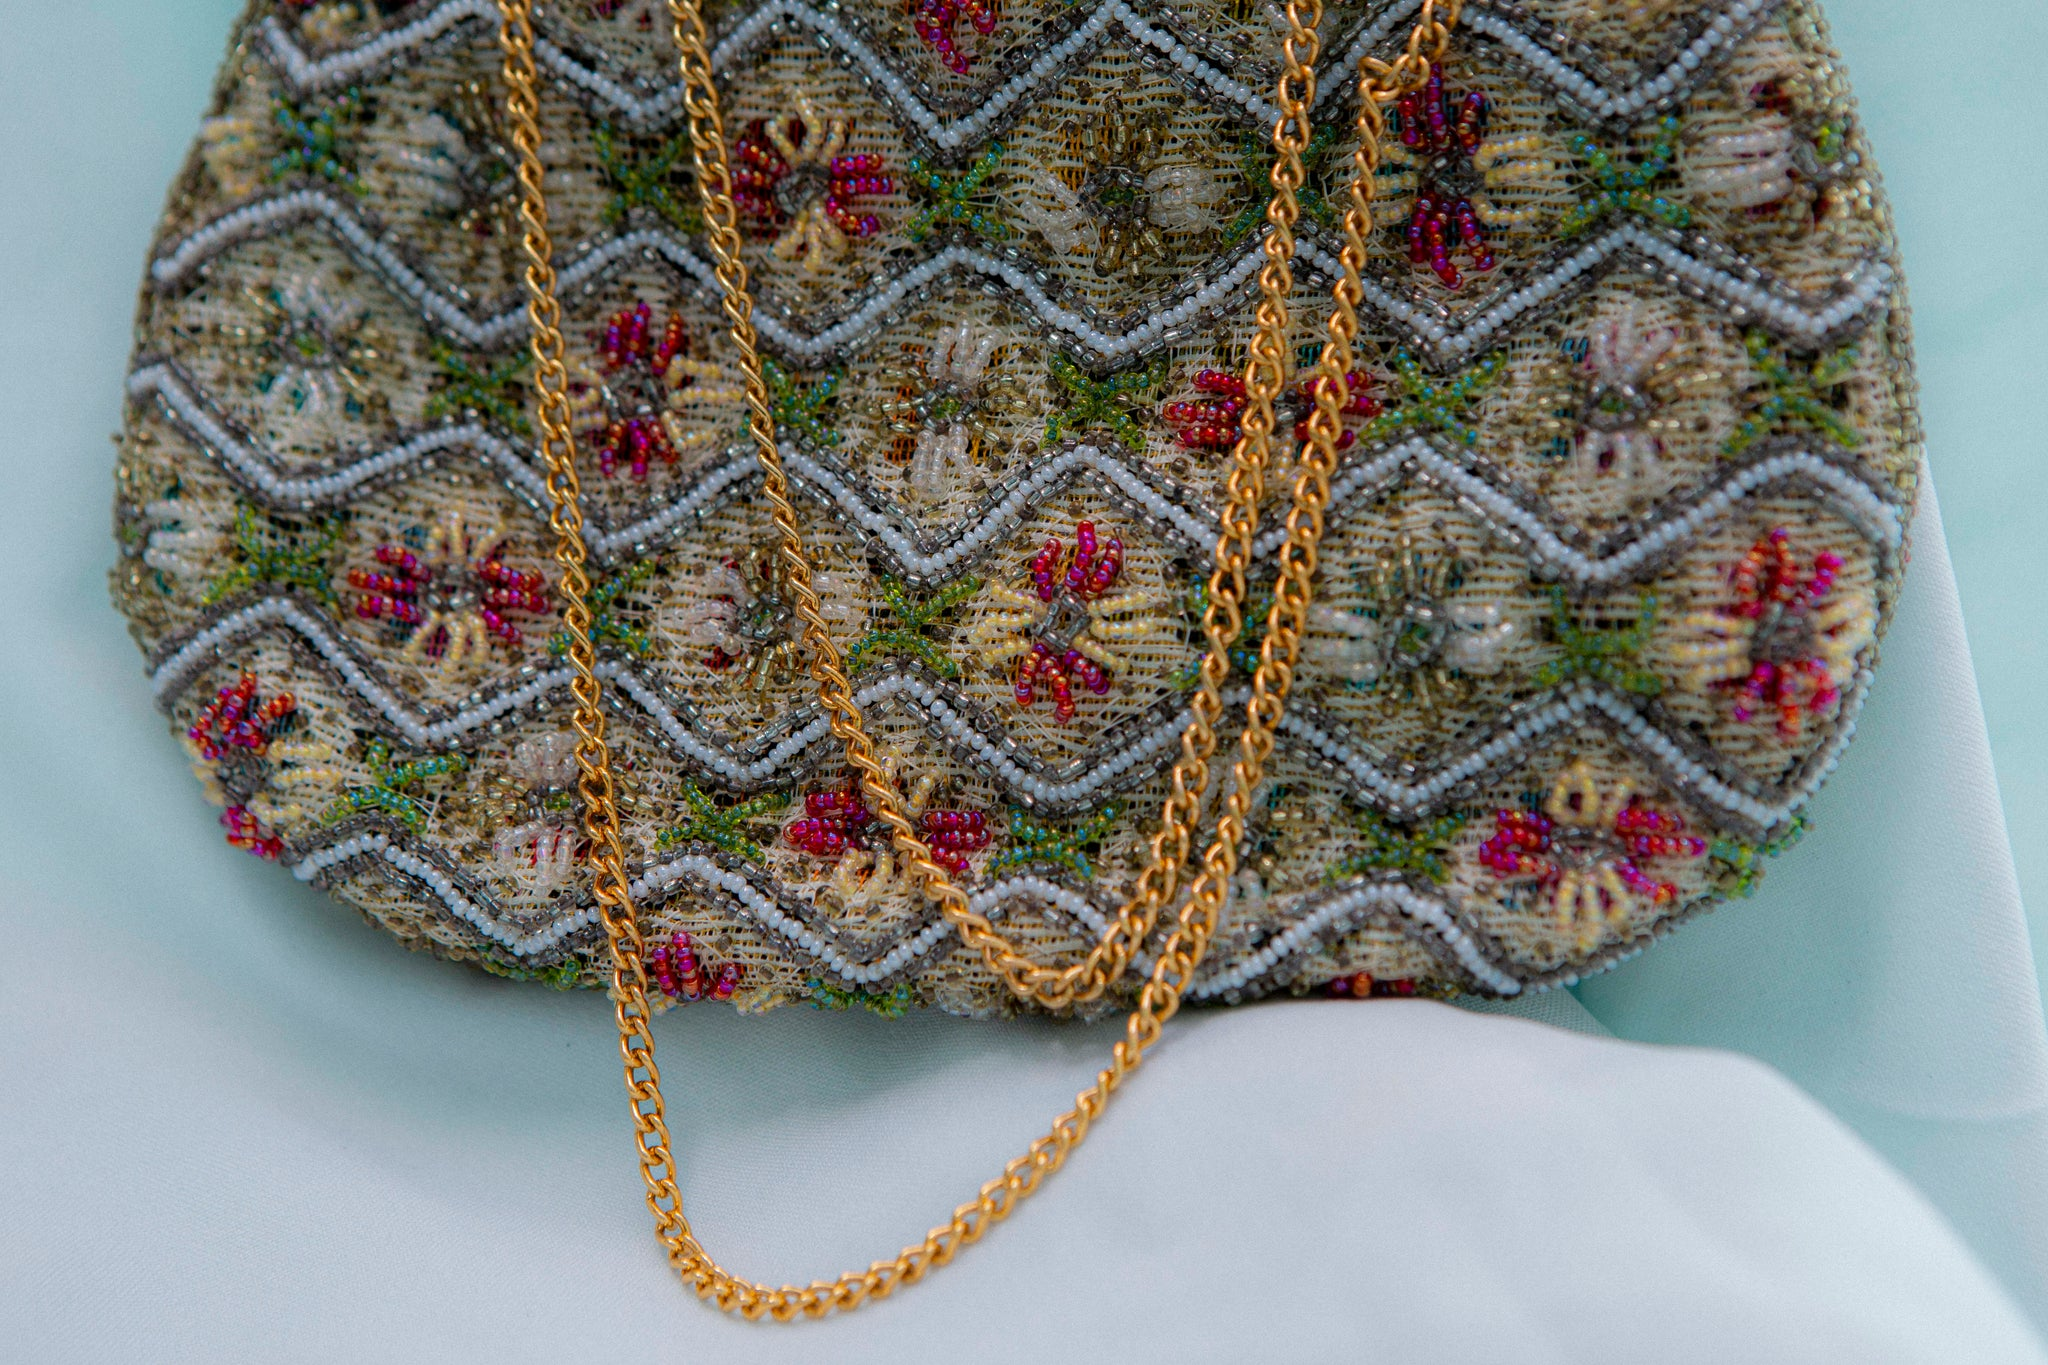 Colorful vintage 1950's beaded hand bag